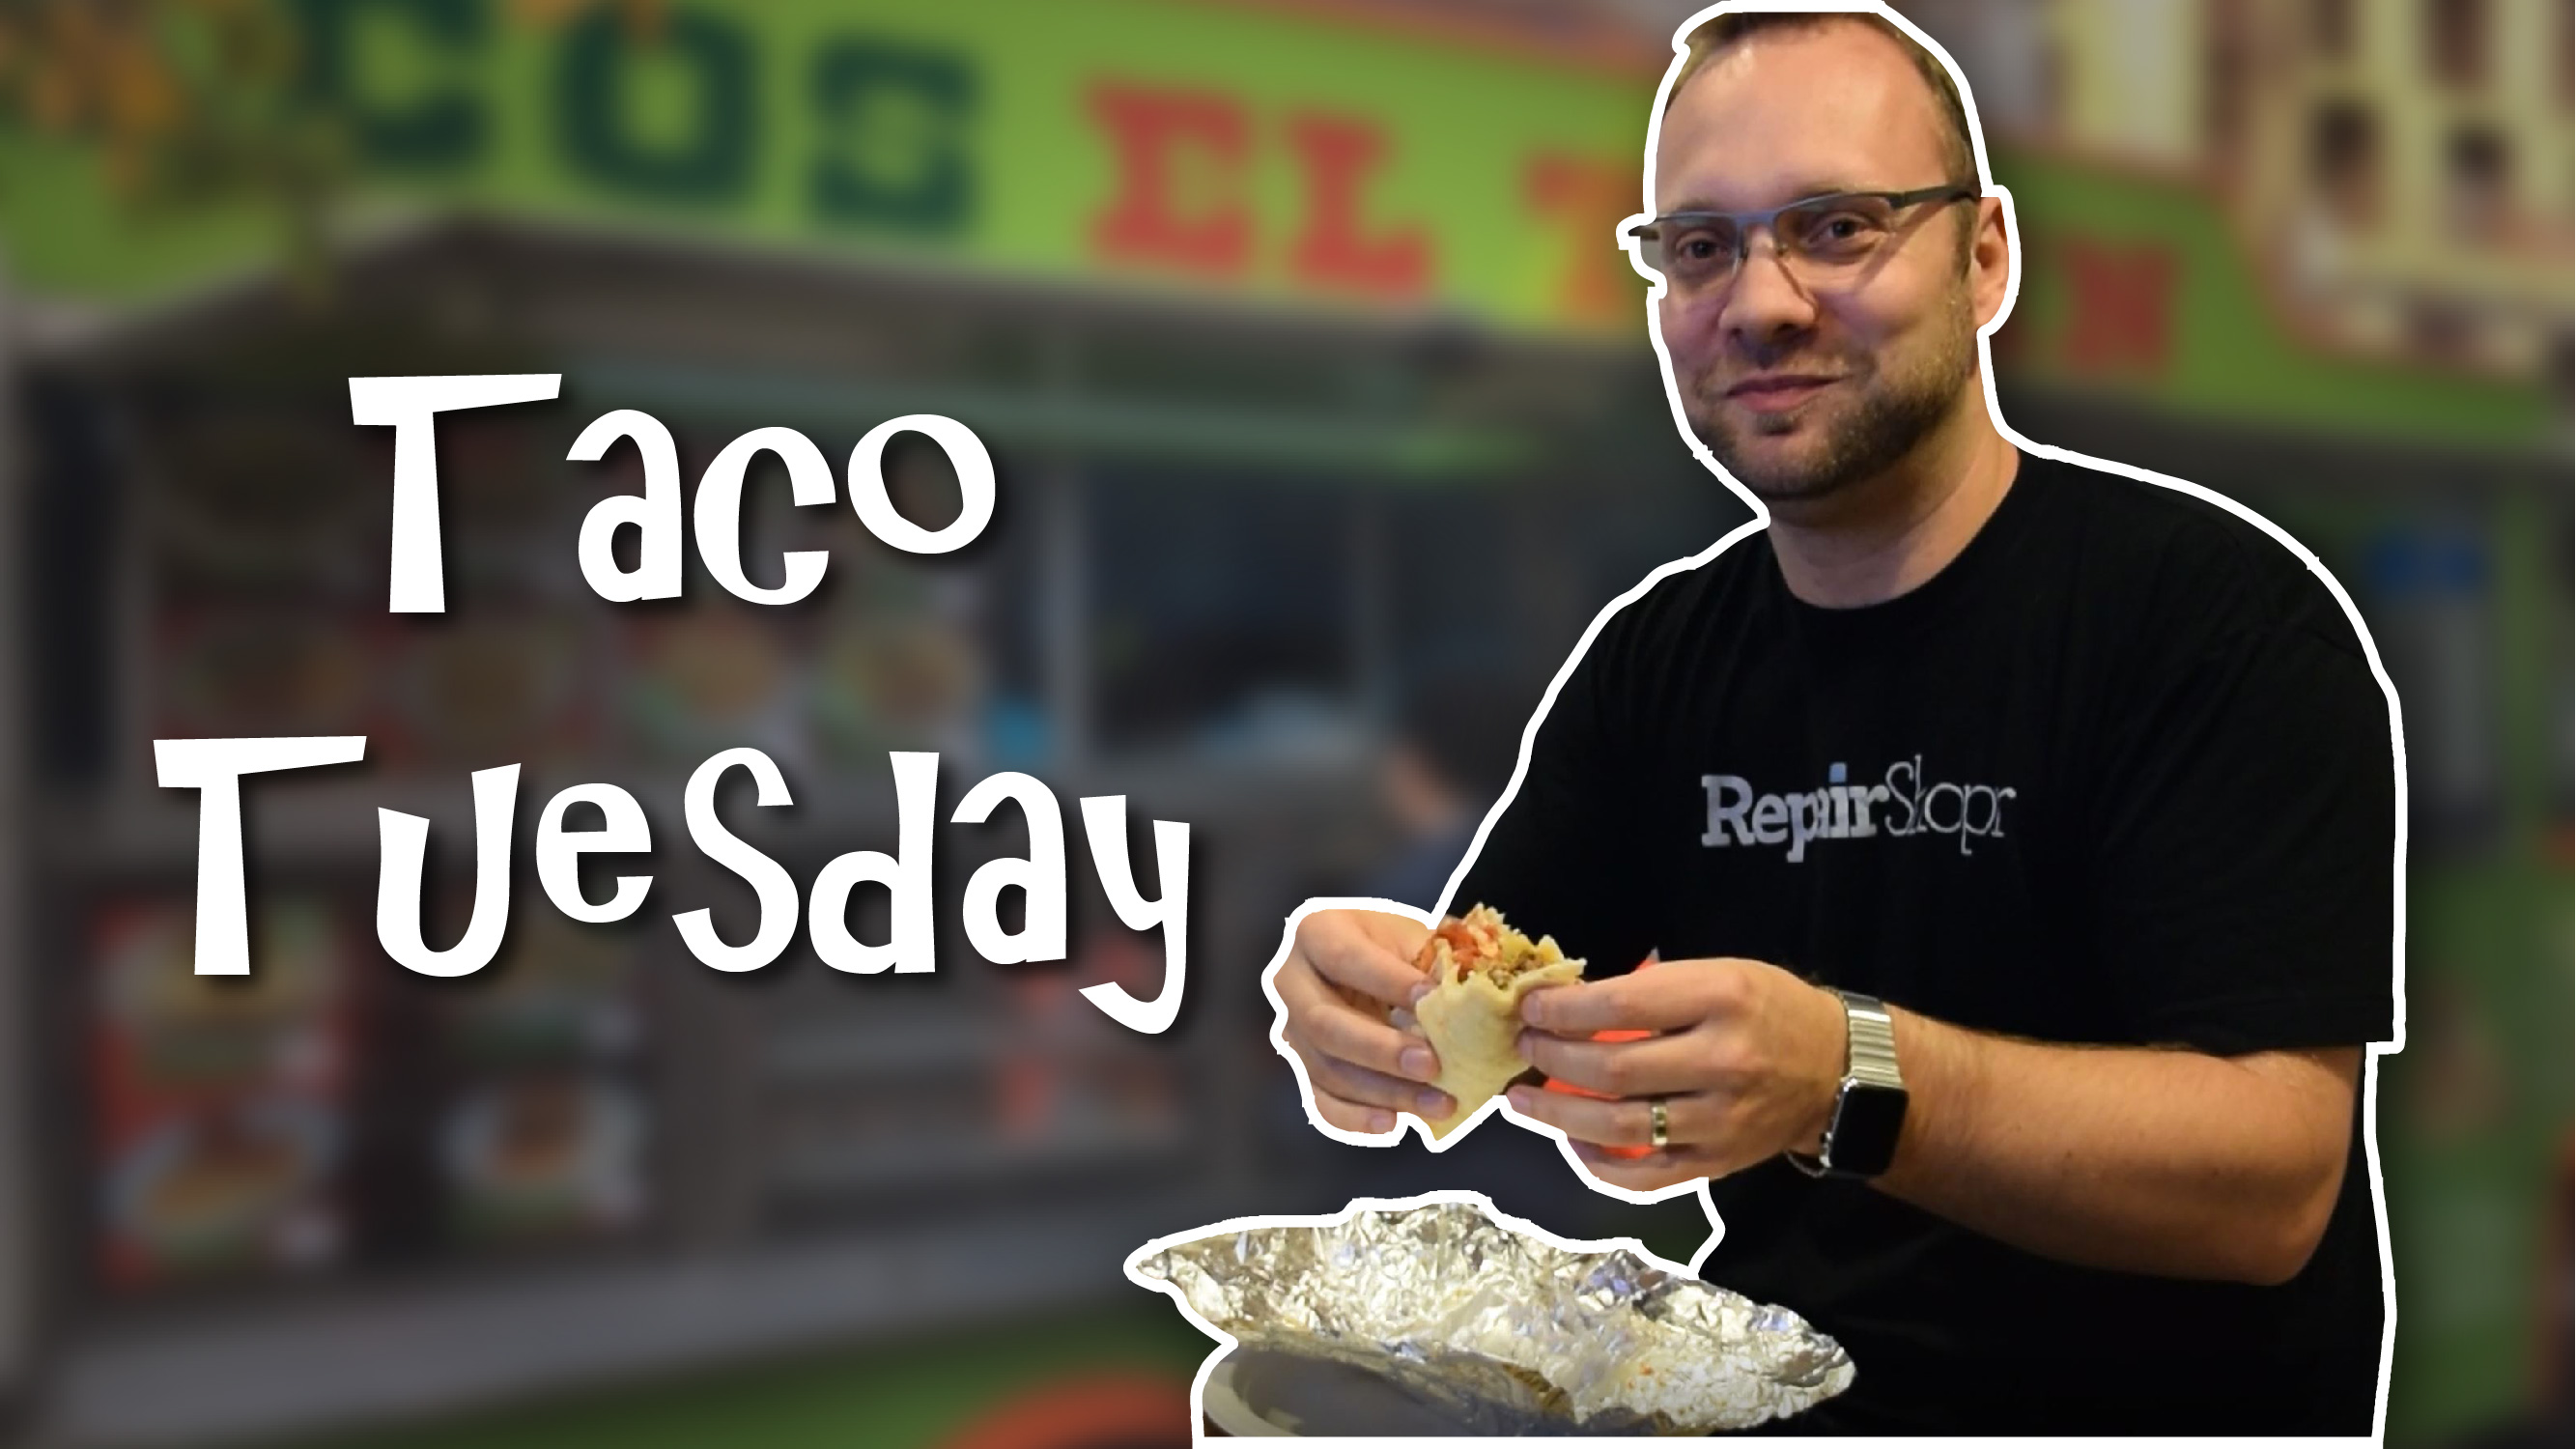 Taco Tuesday with Matt from Tech Site Builder